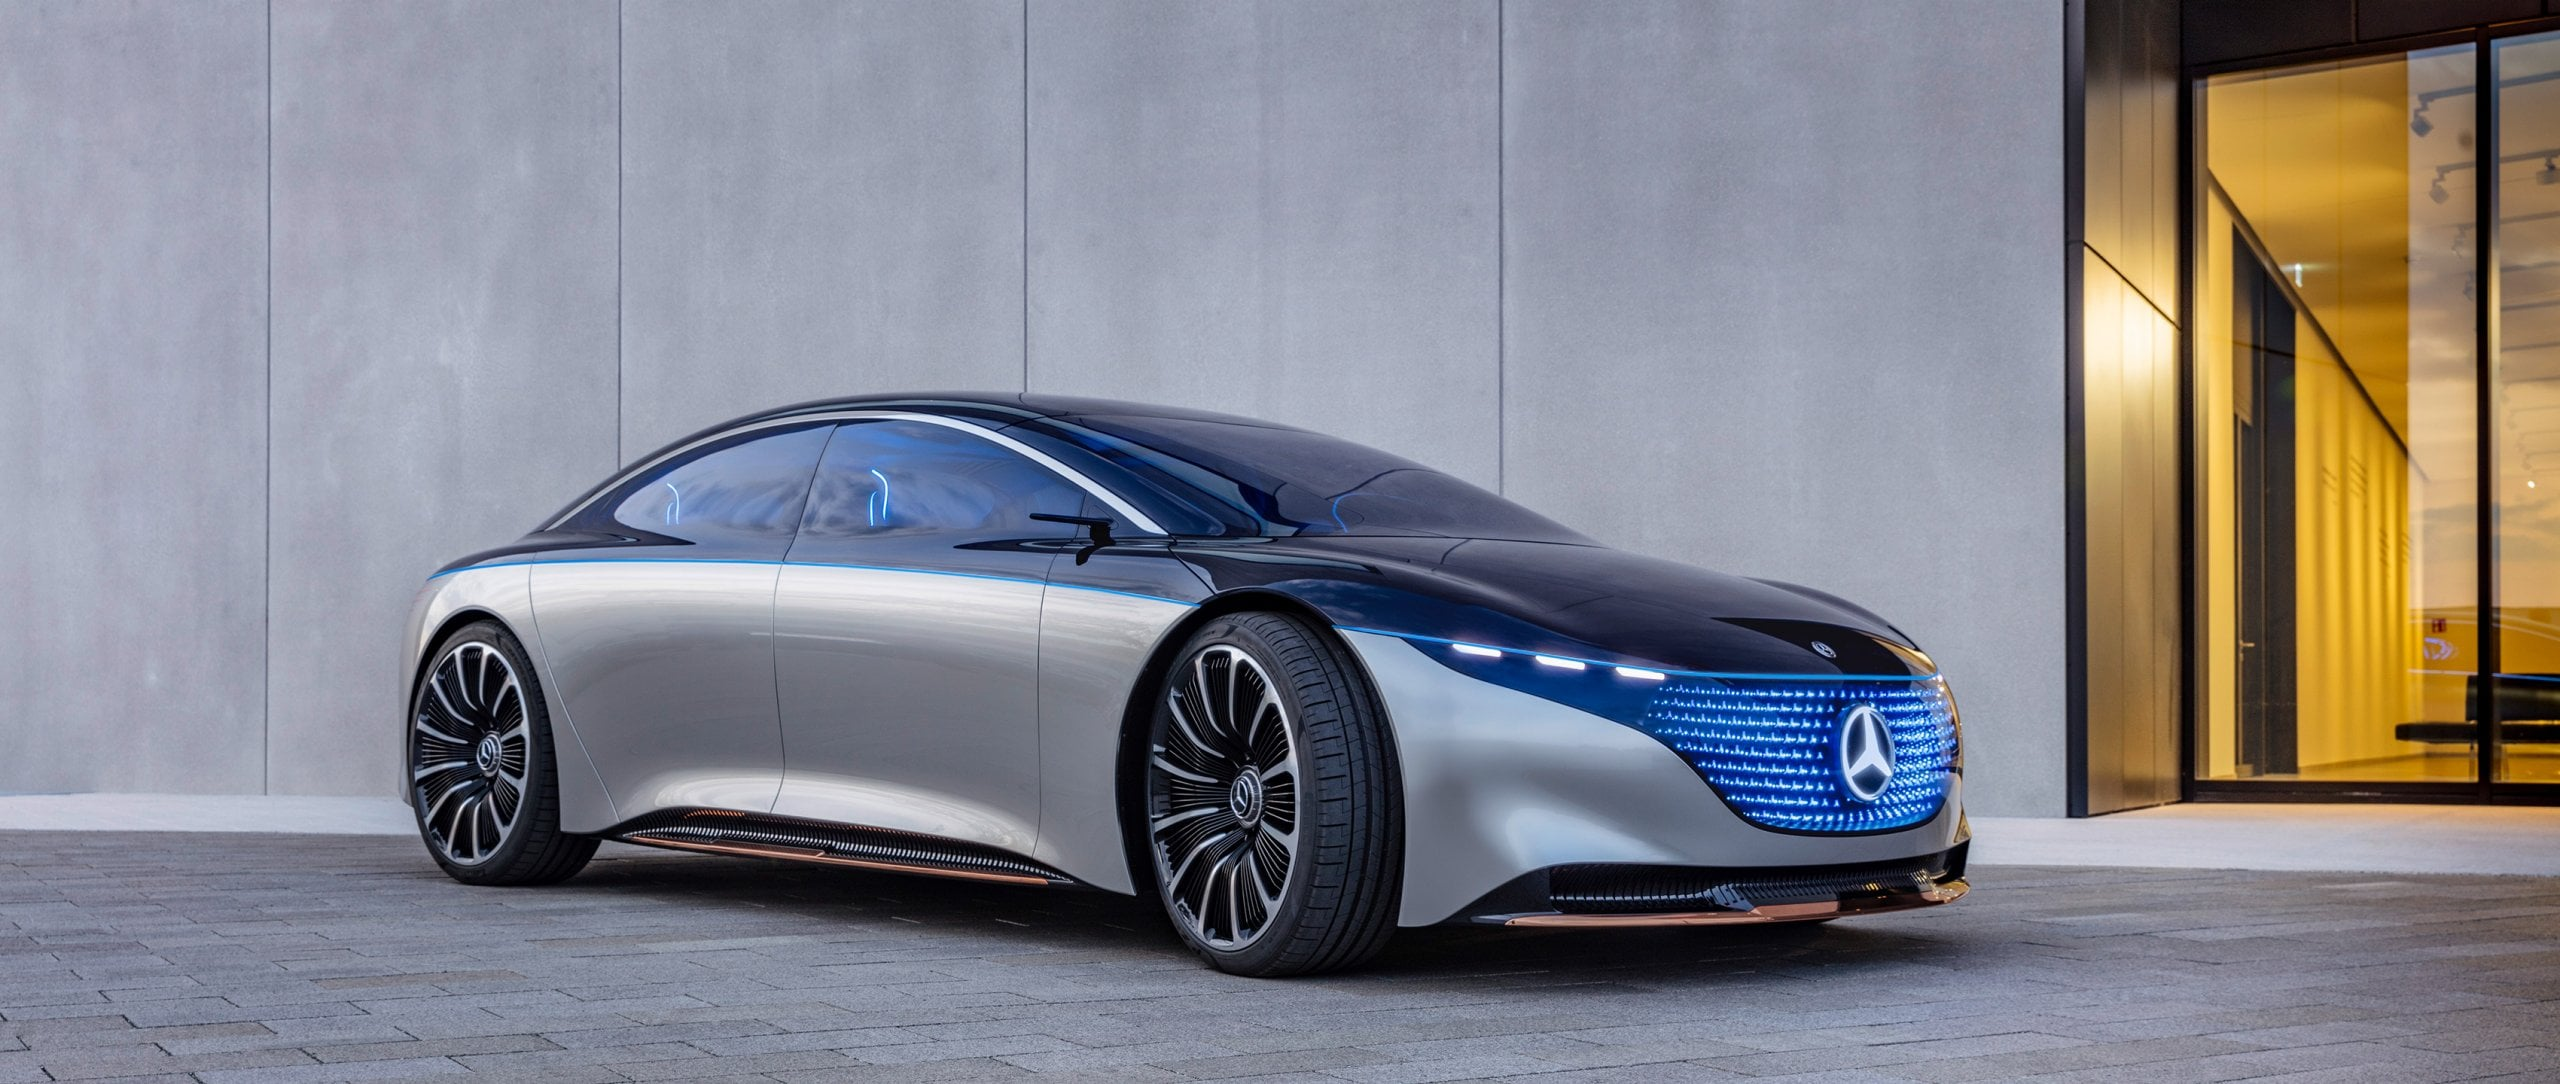 The new Mercedes-Benz VISION EQS.